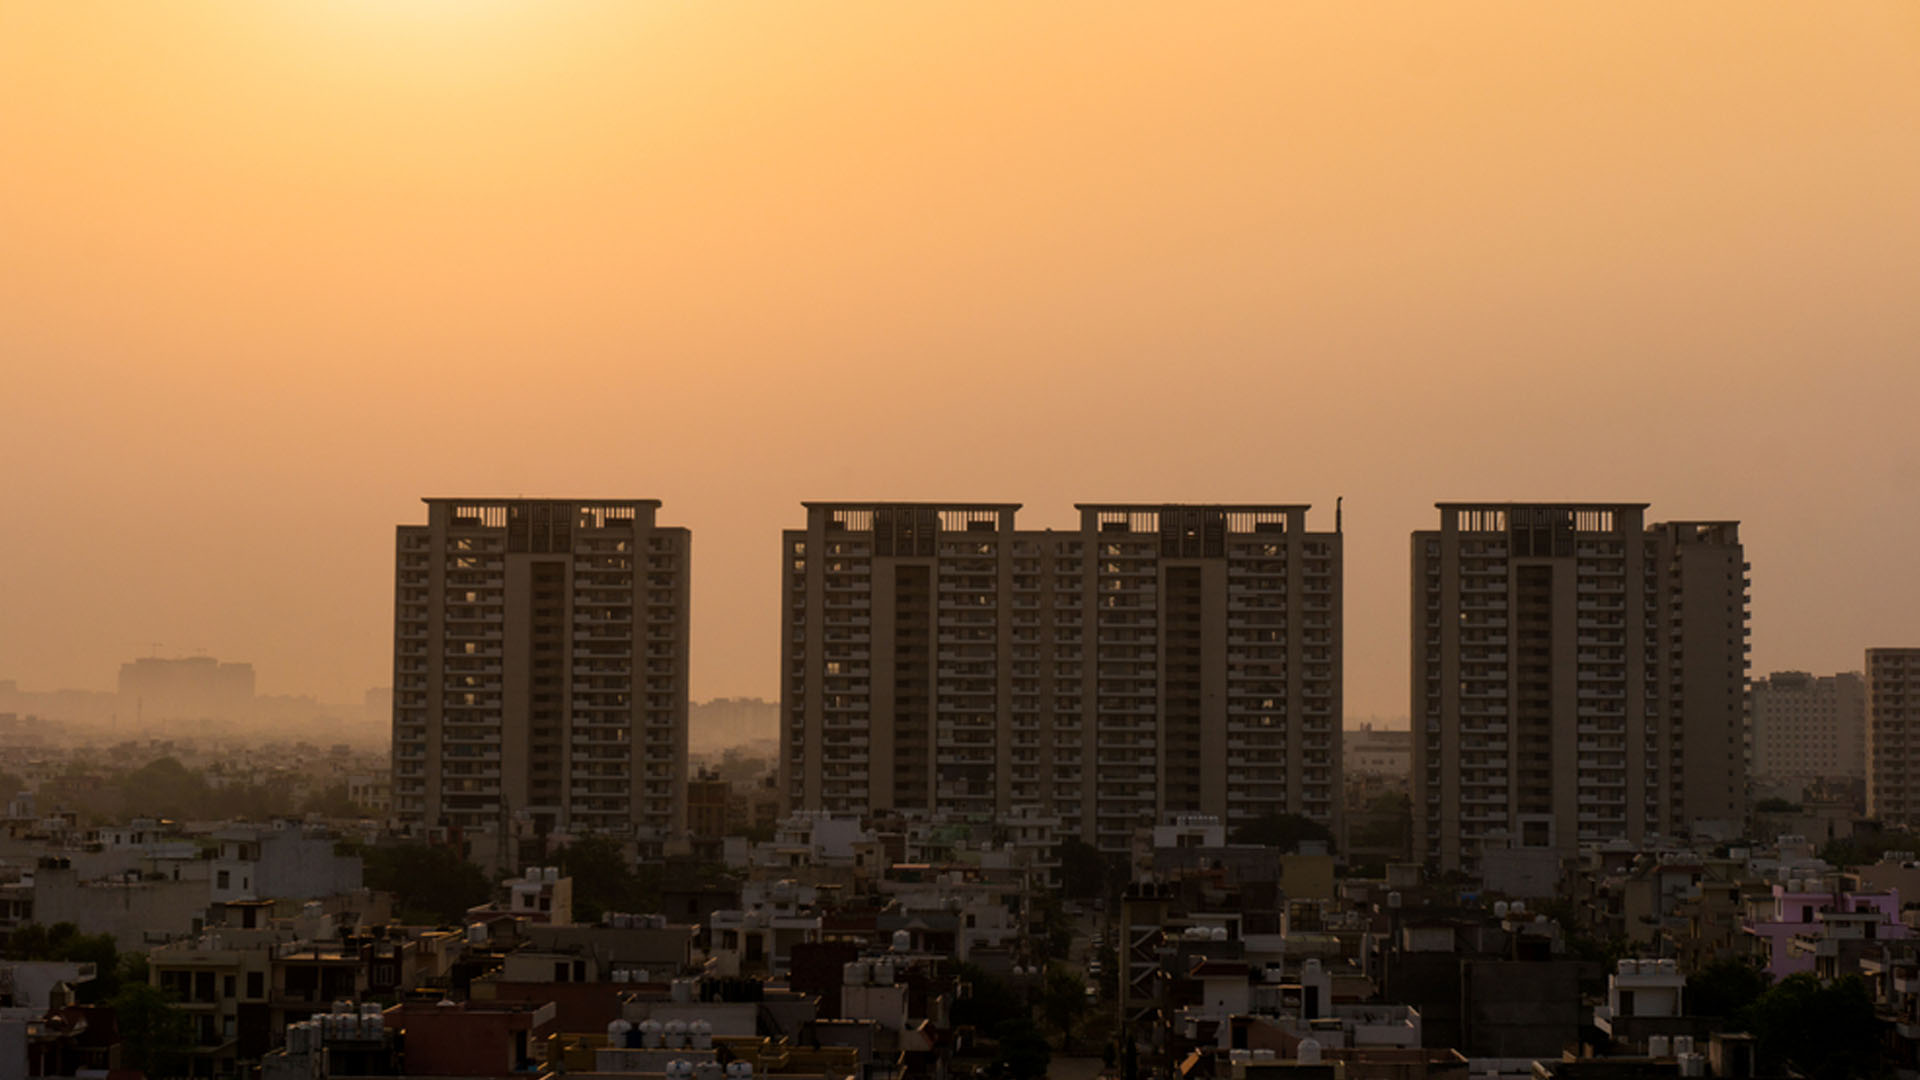 Gurgaon realty developers reducing apartment size to make them more affordable, revive demand